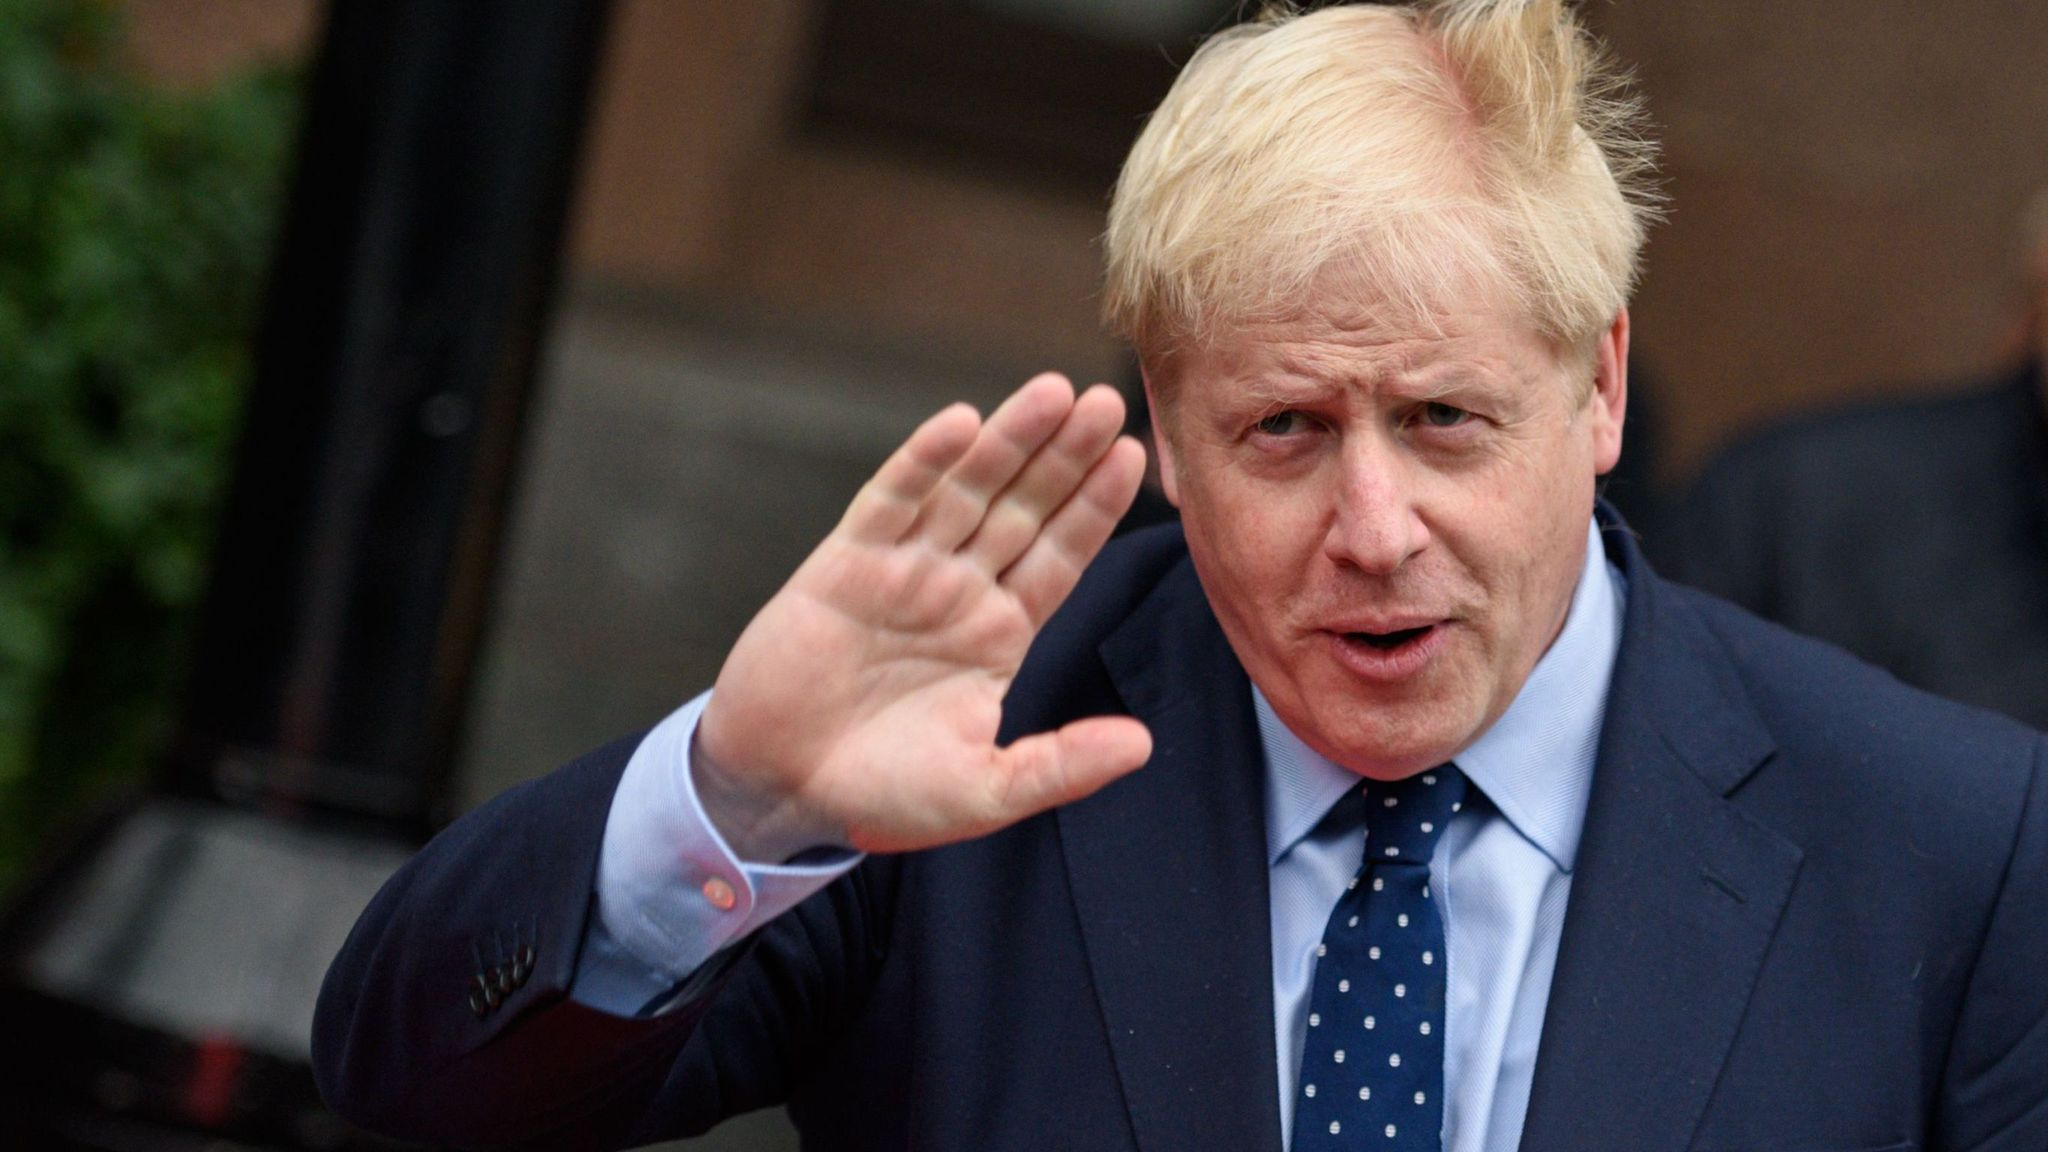 PM to EU: We're packing our bags, will you cheerily wave us off?